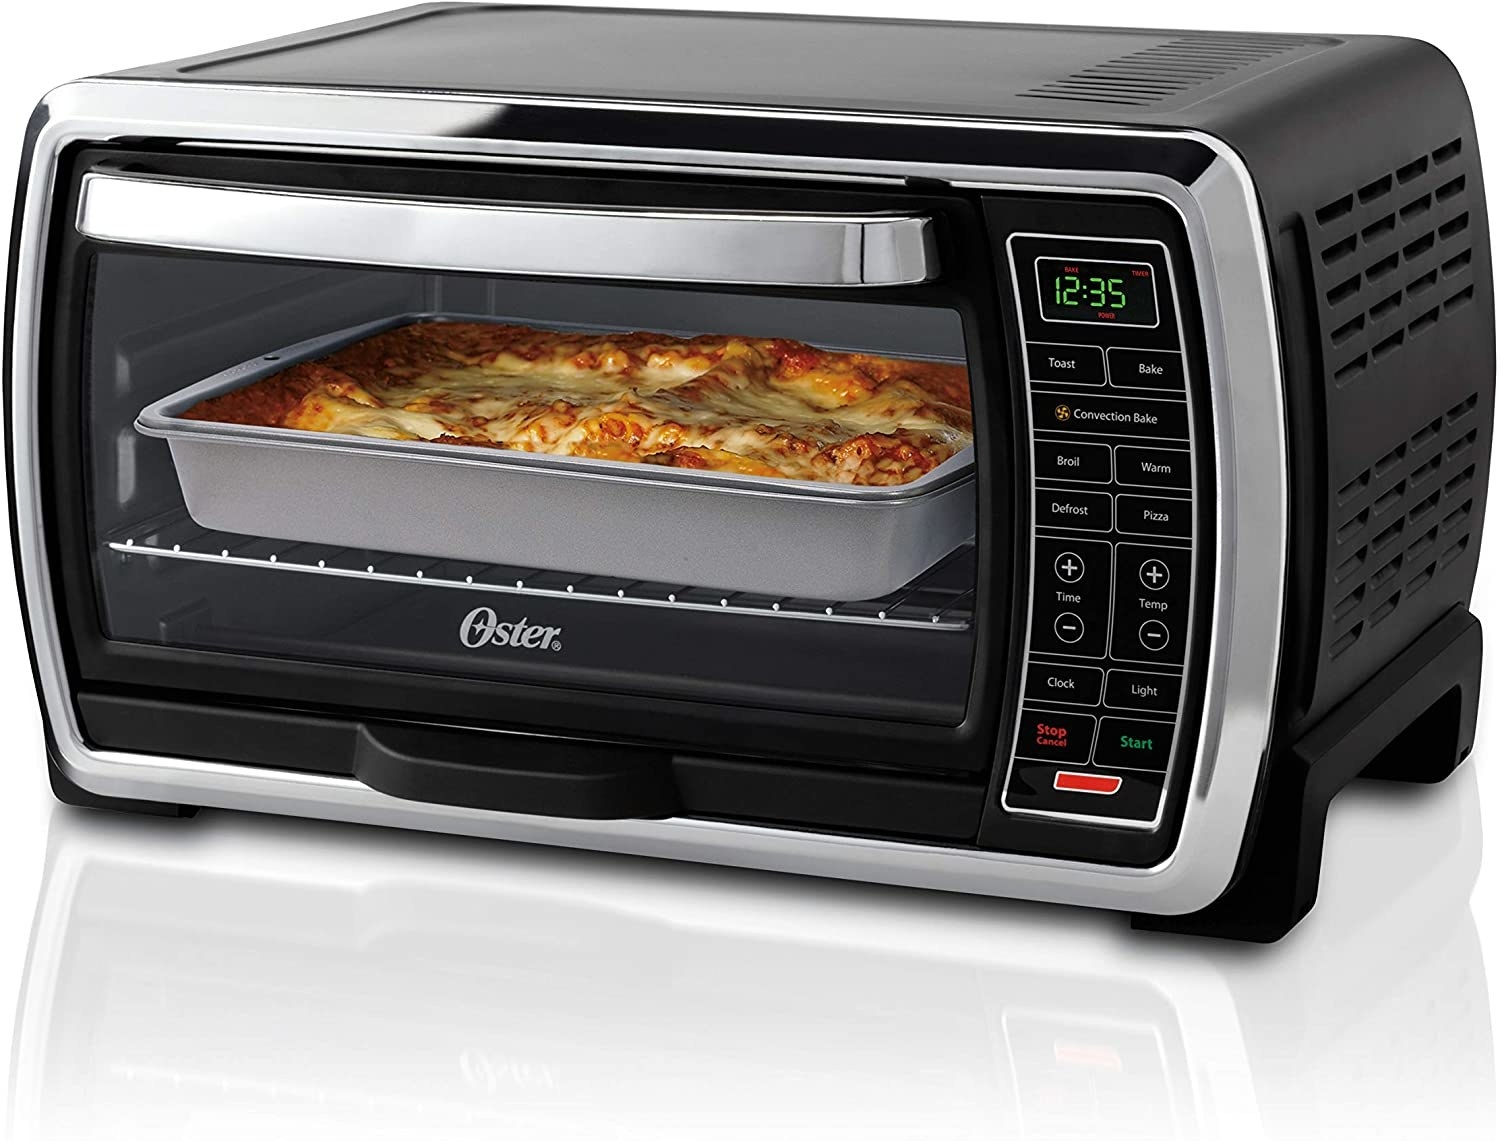 Oster toaster oven with lasagna inside